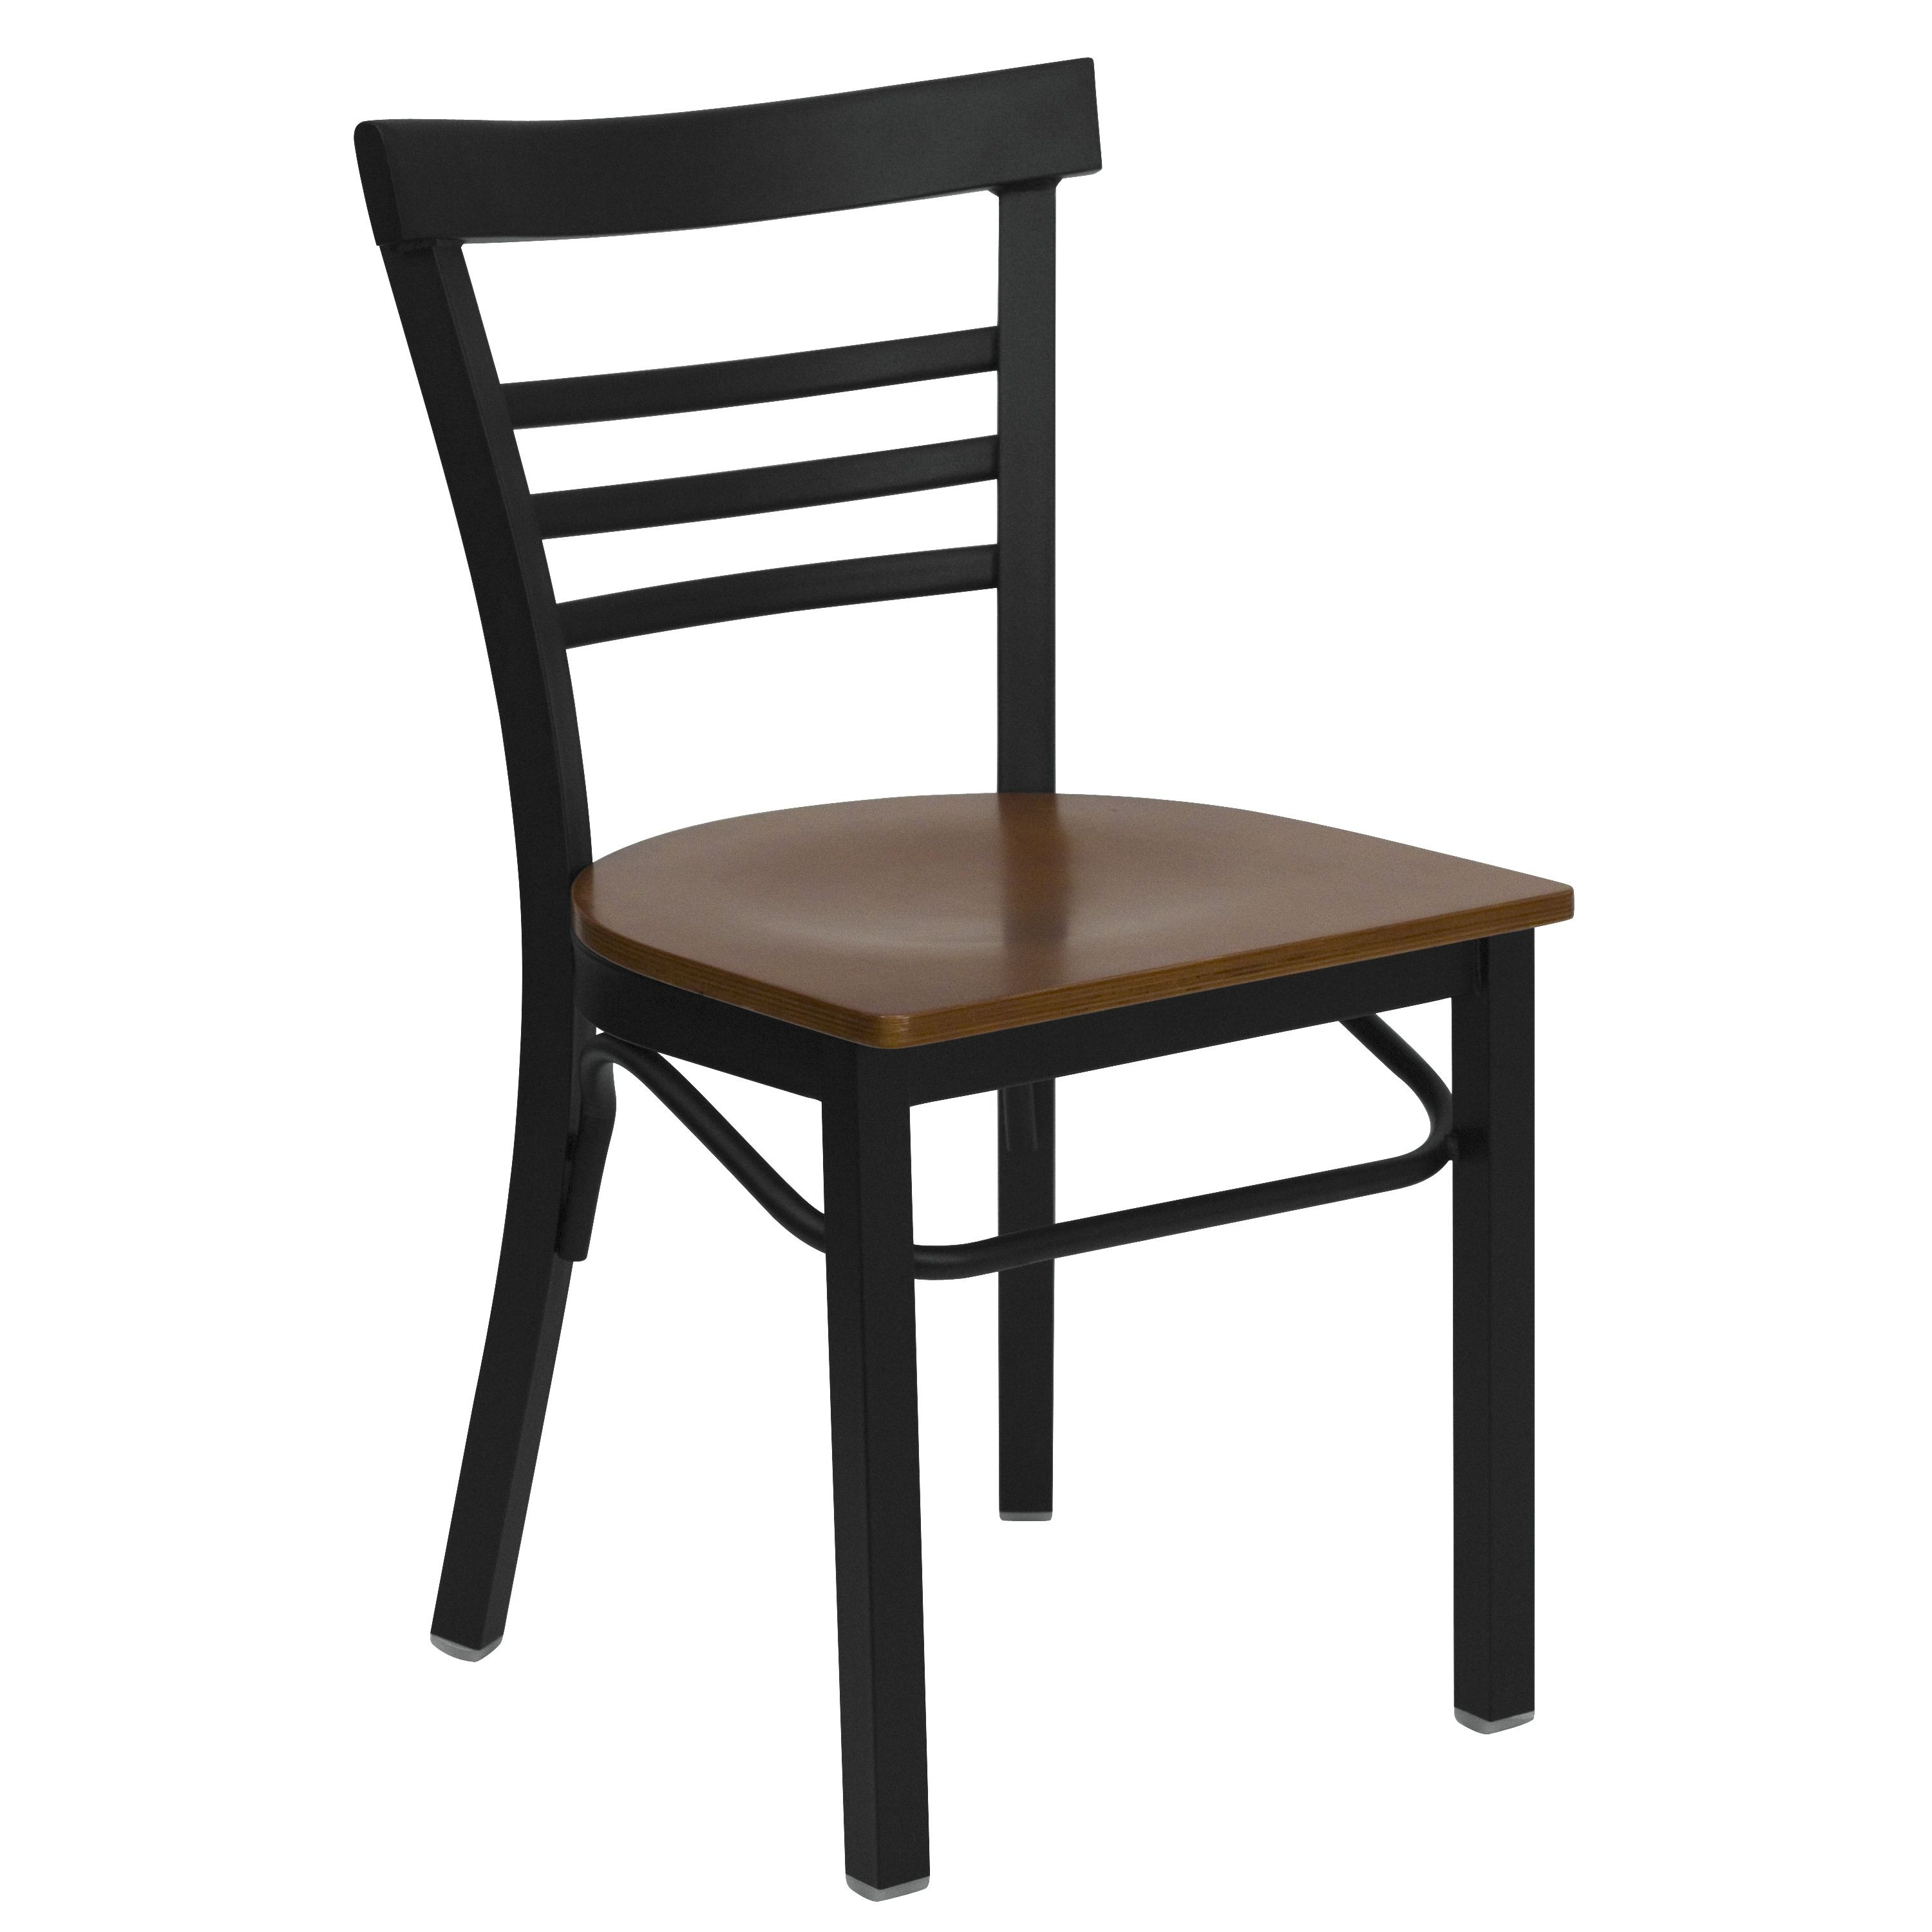 Black Ladder Back Metal Chair with Cherry Wood Seat